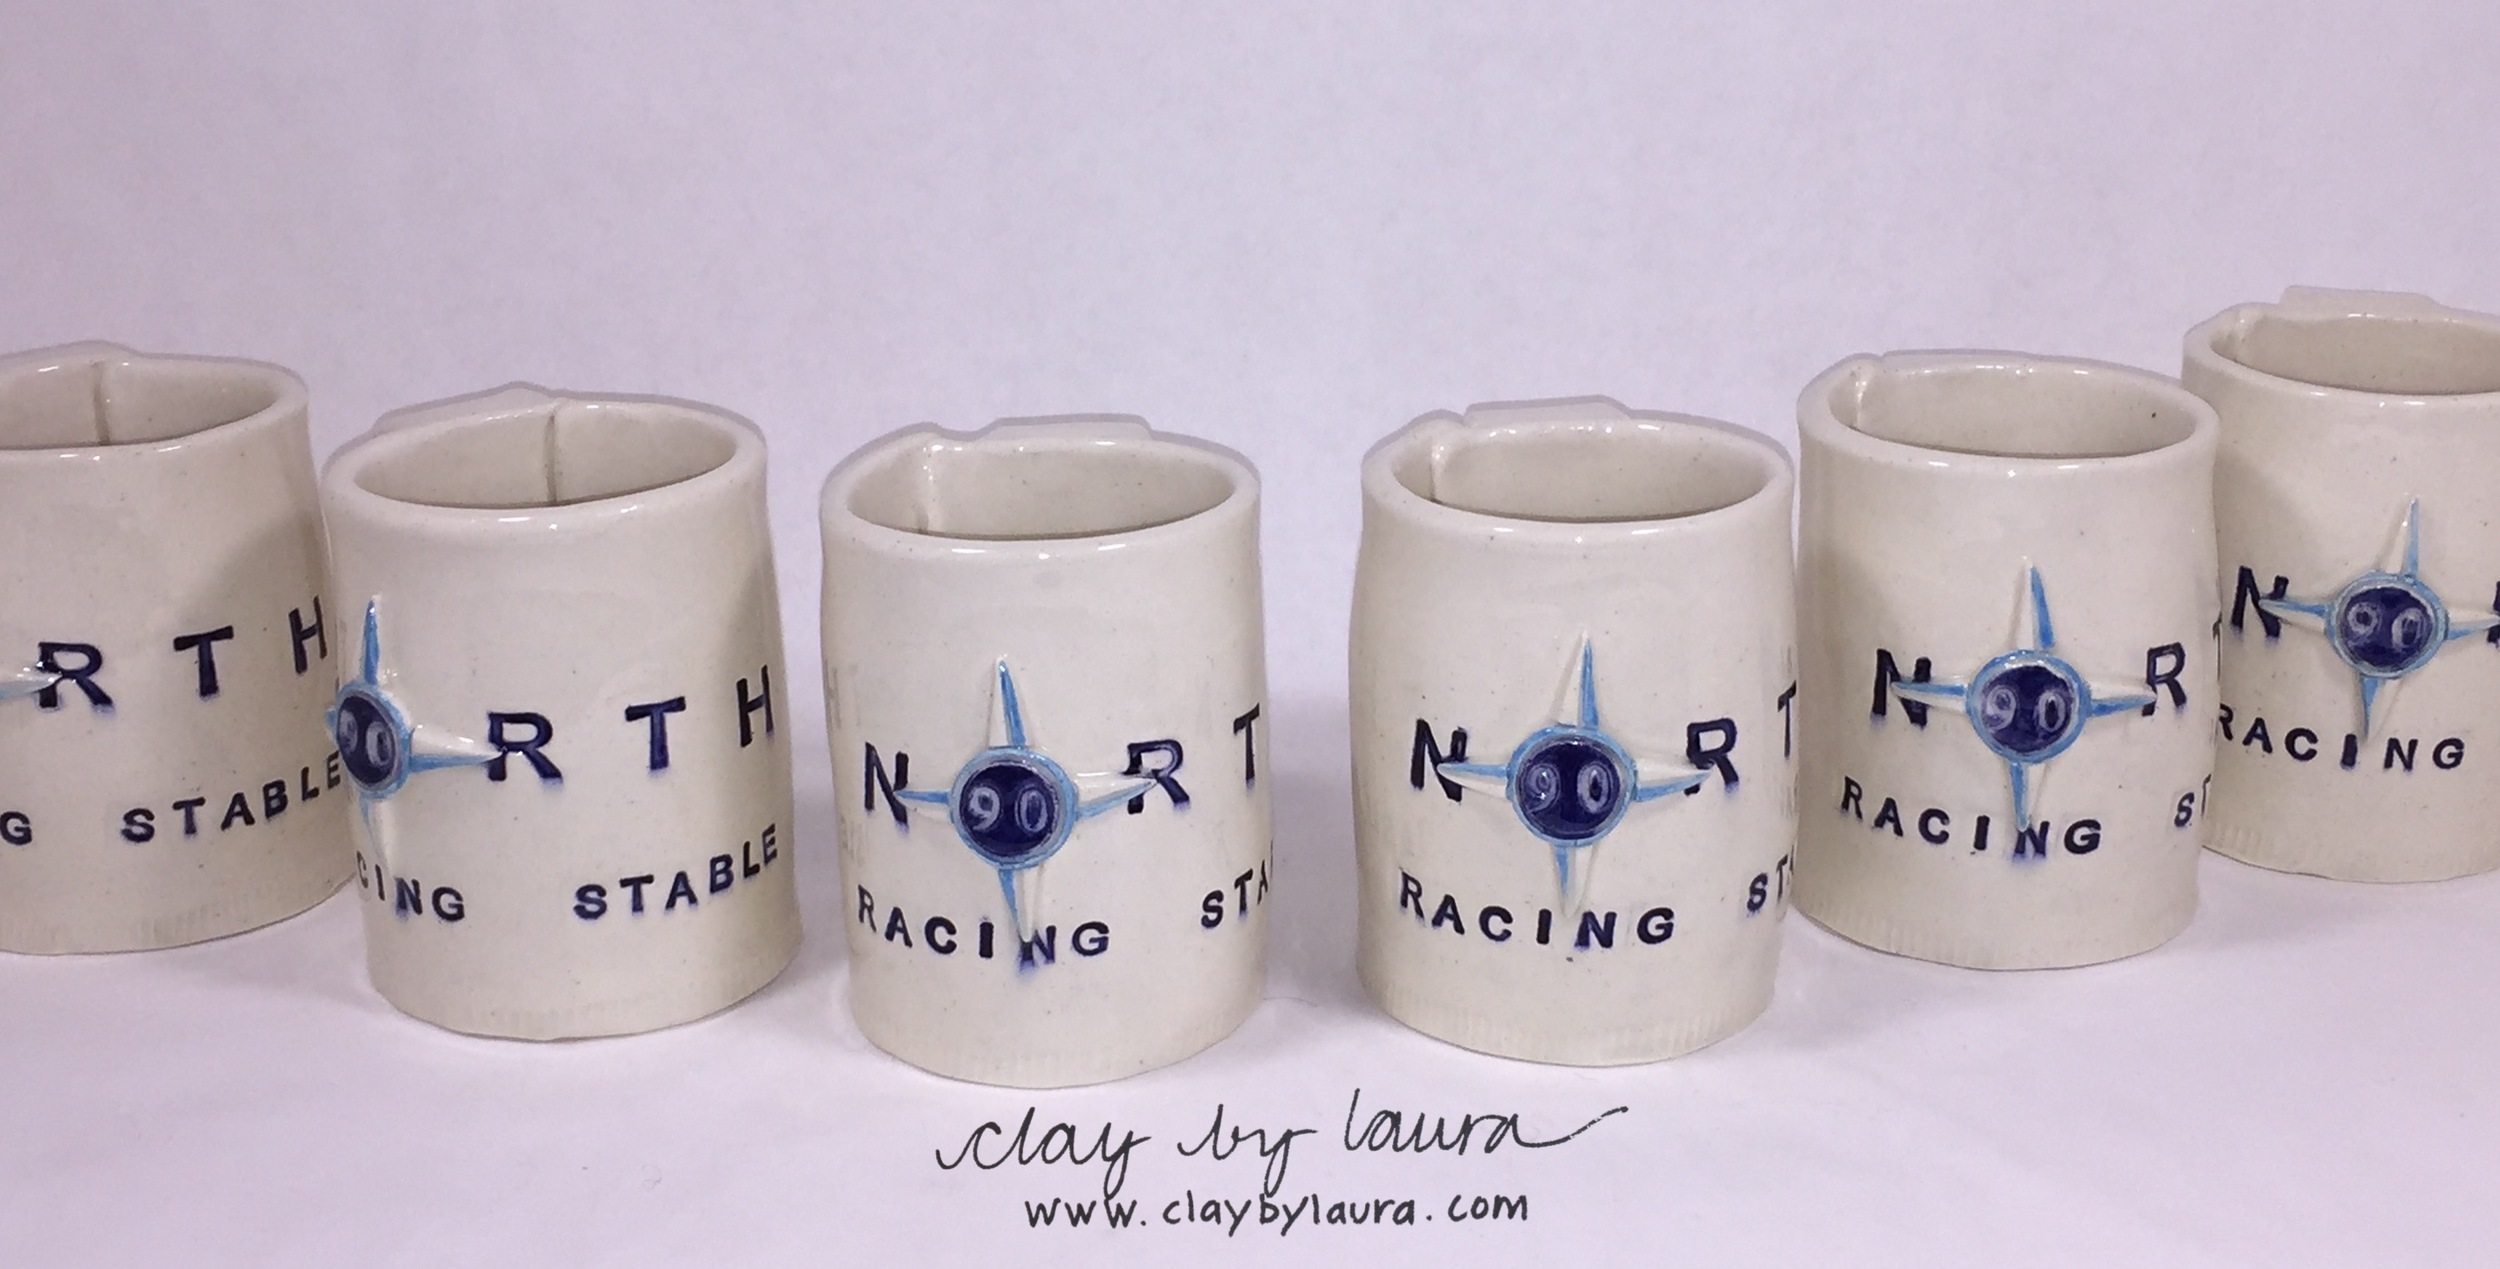 This set of mugs uses a company logo as the basis for the decoration and colors. It took a couple of tries to get this commission to completion, but that's part of the process!